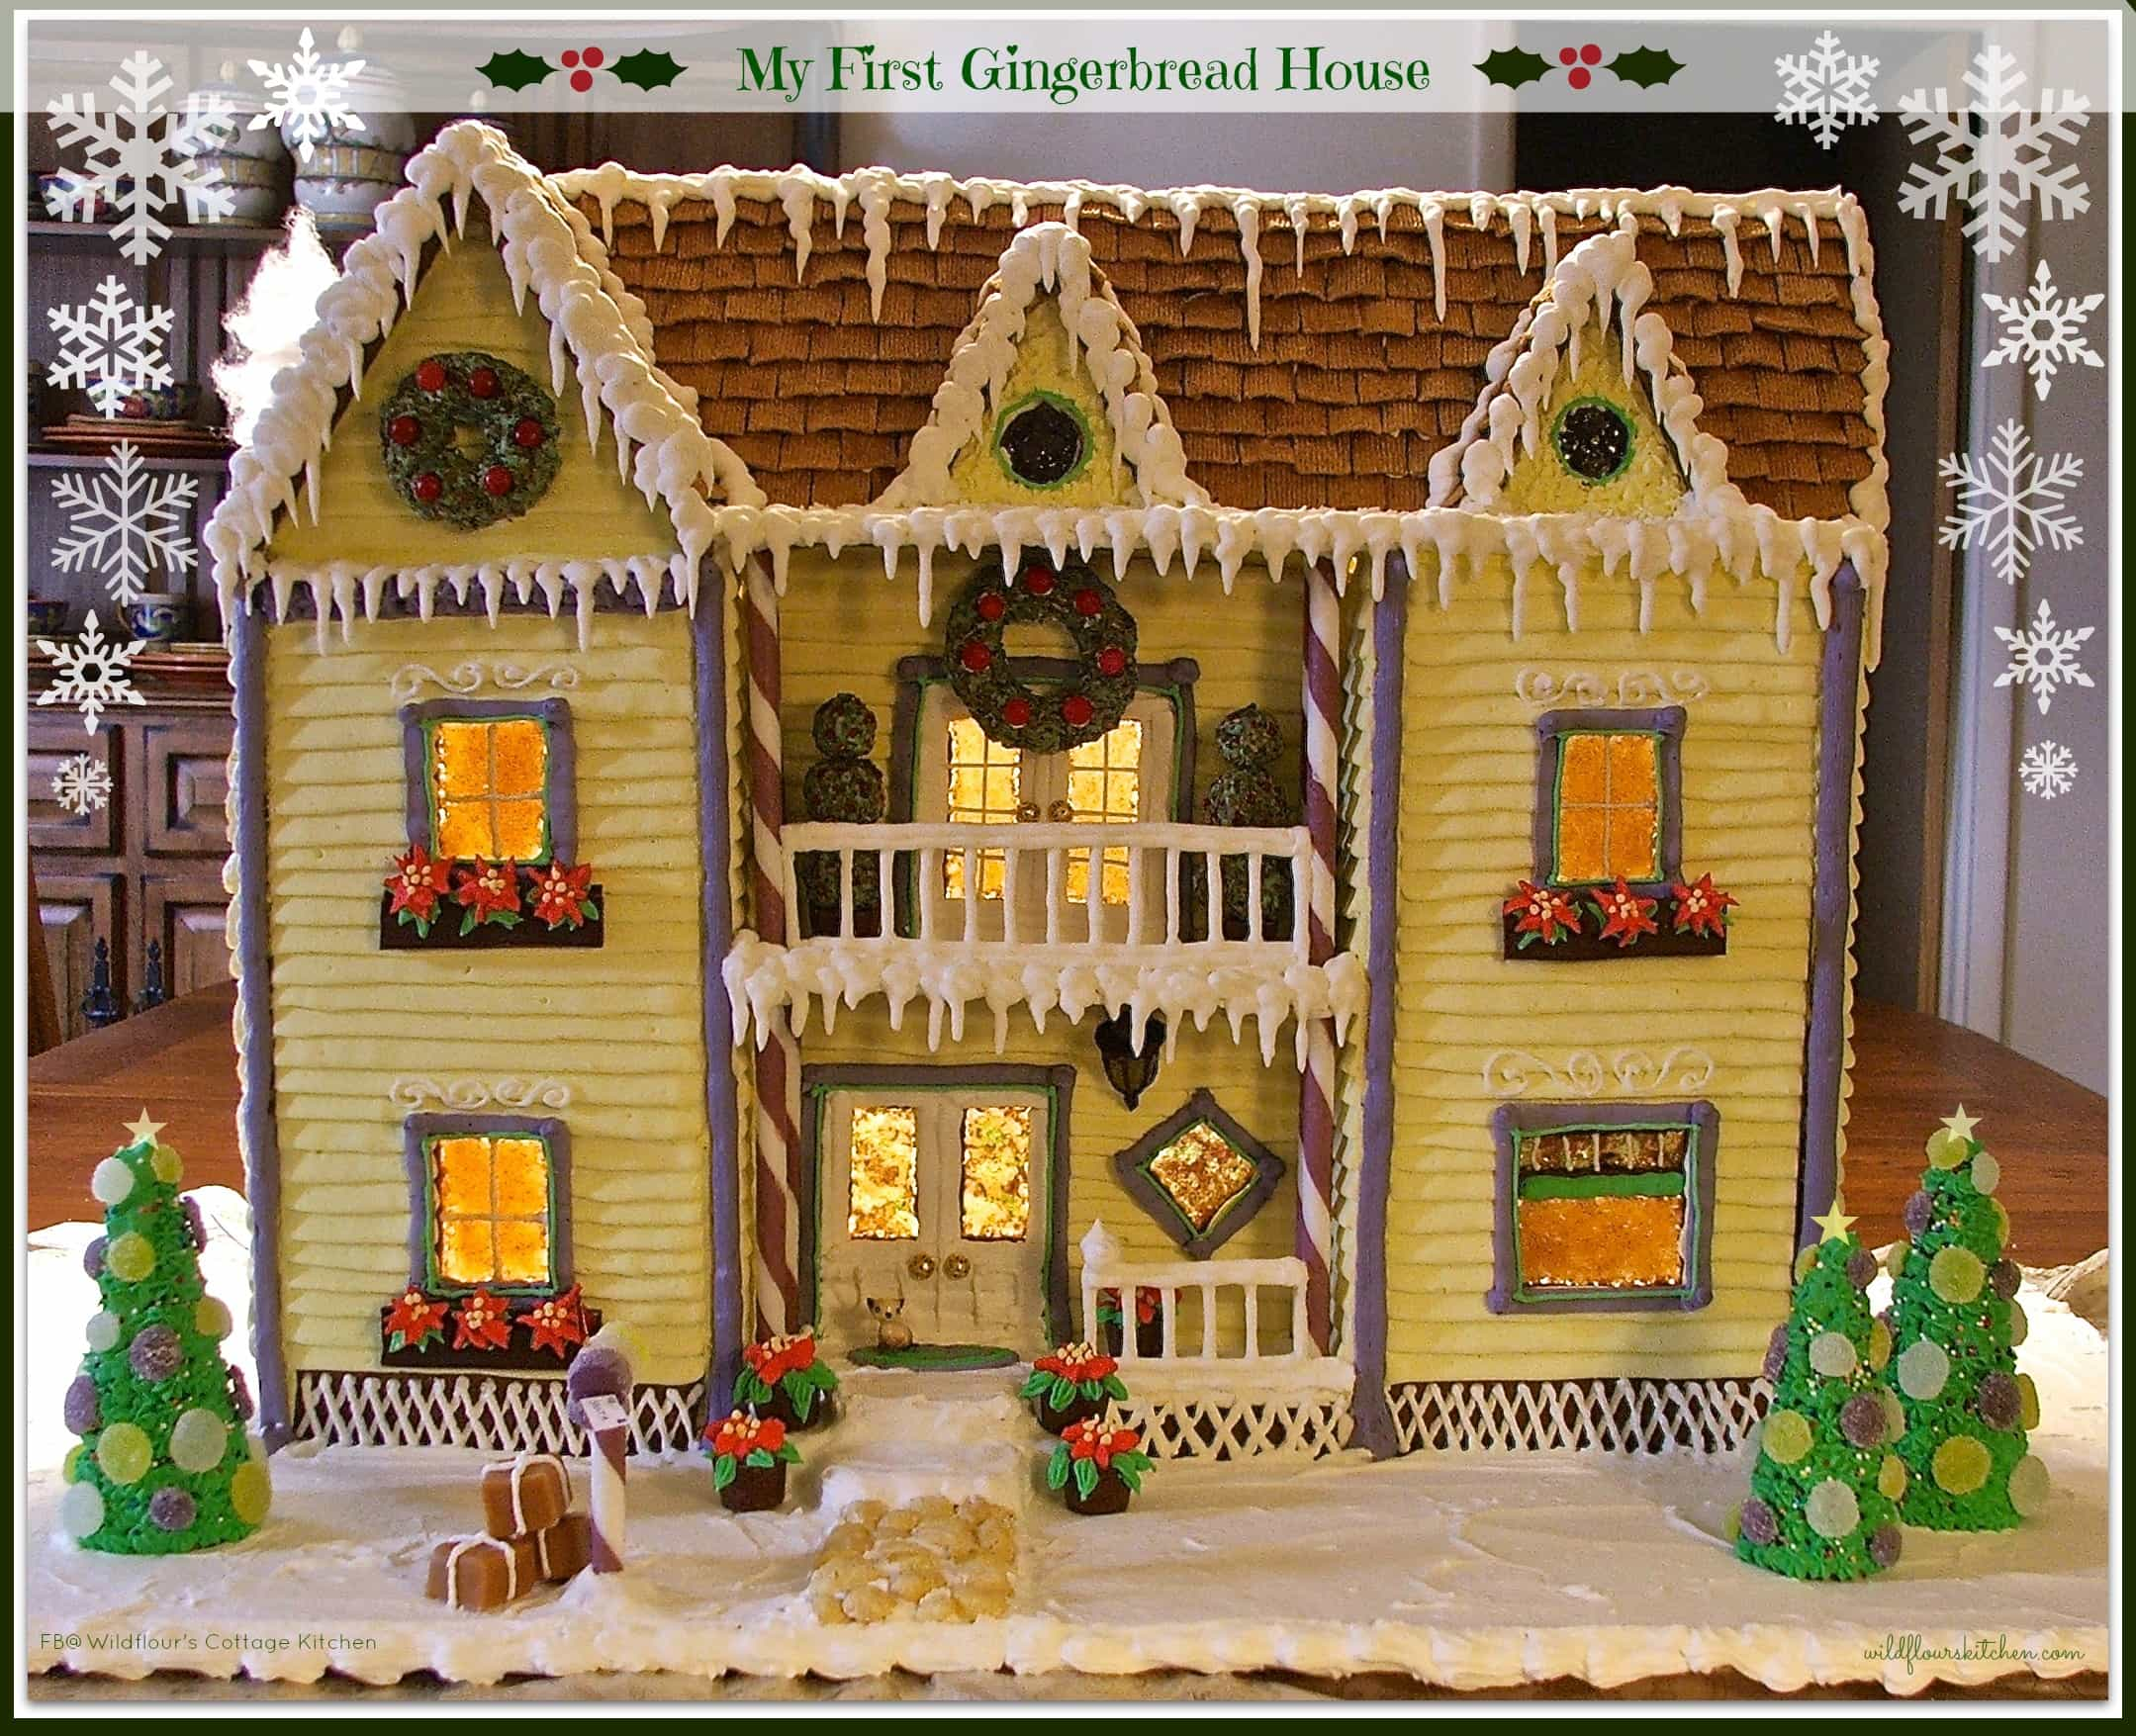 My first gingerbread house recipes tips and instructions for How to make best gingerbread house